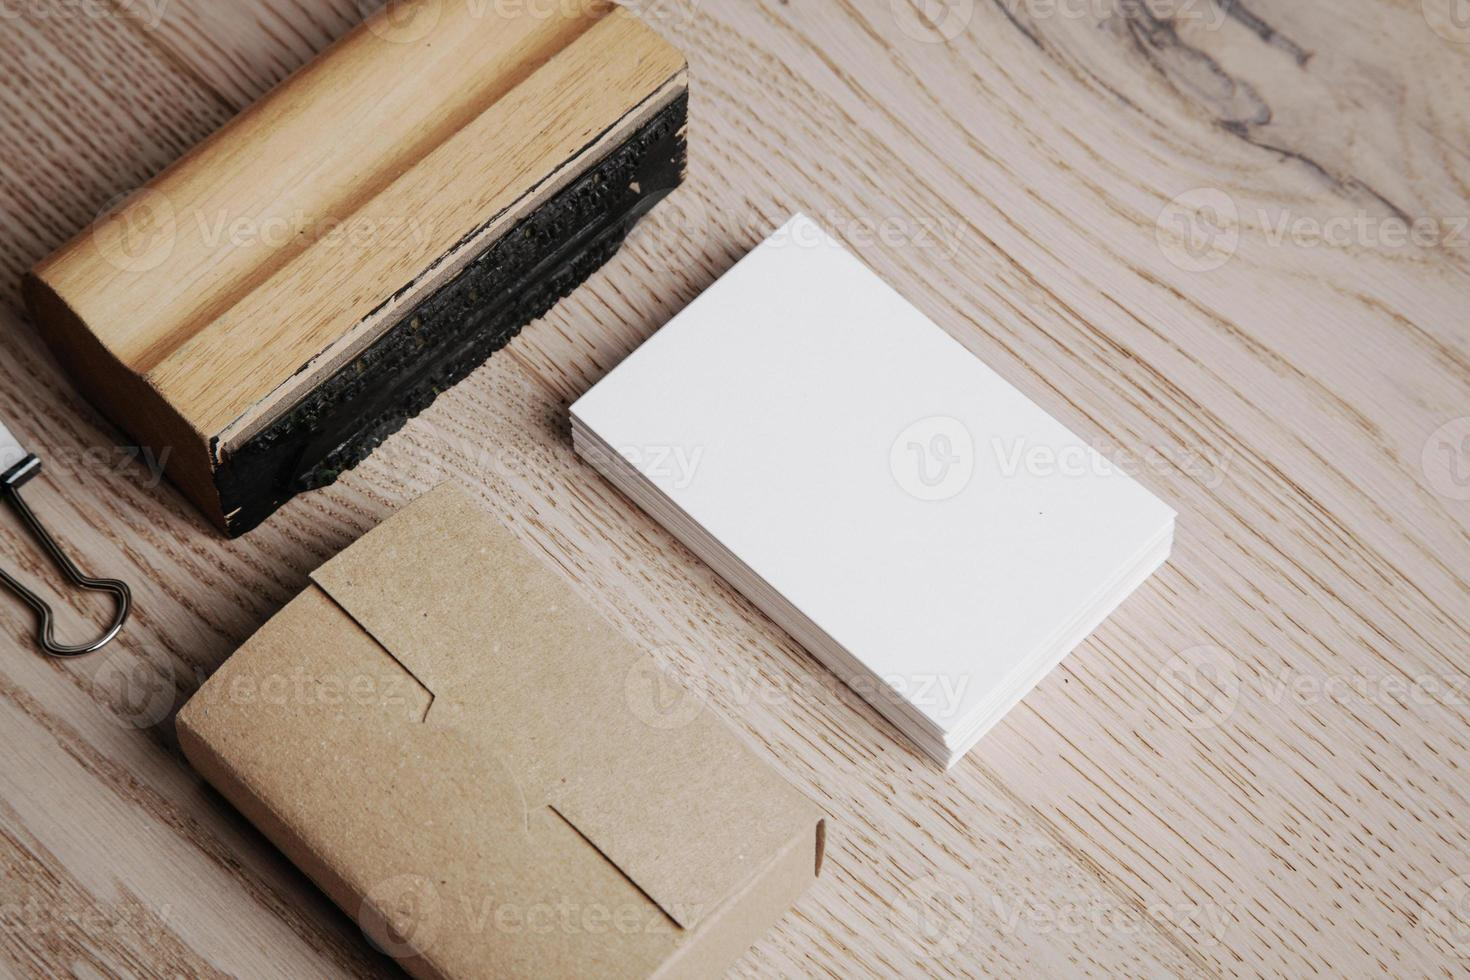 Office elements on the wooden background. Horizontal photo